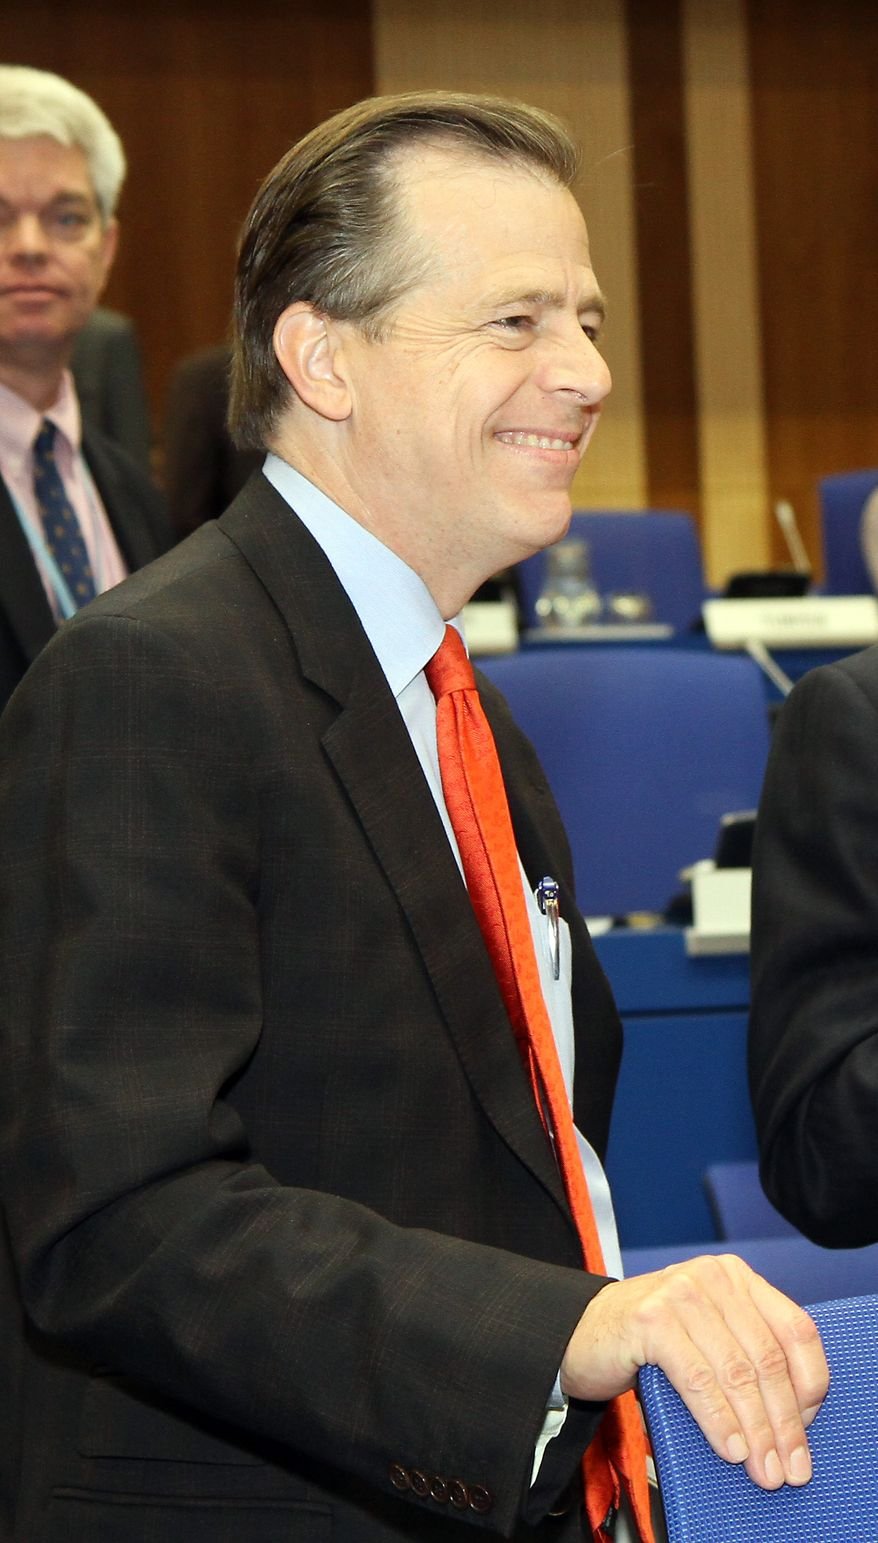 Glyn Davies, U.S. ambassador to the International Atomic Energy Agency, waits for the start of the IAEA's board of governors meeting at the International Center in Vienna, Austria, on Wednesday, Sept. 15, 2010. (AP Photo/Ronald Zak)